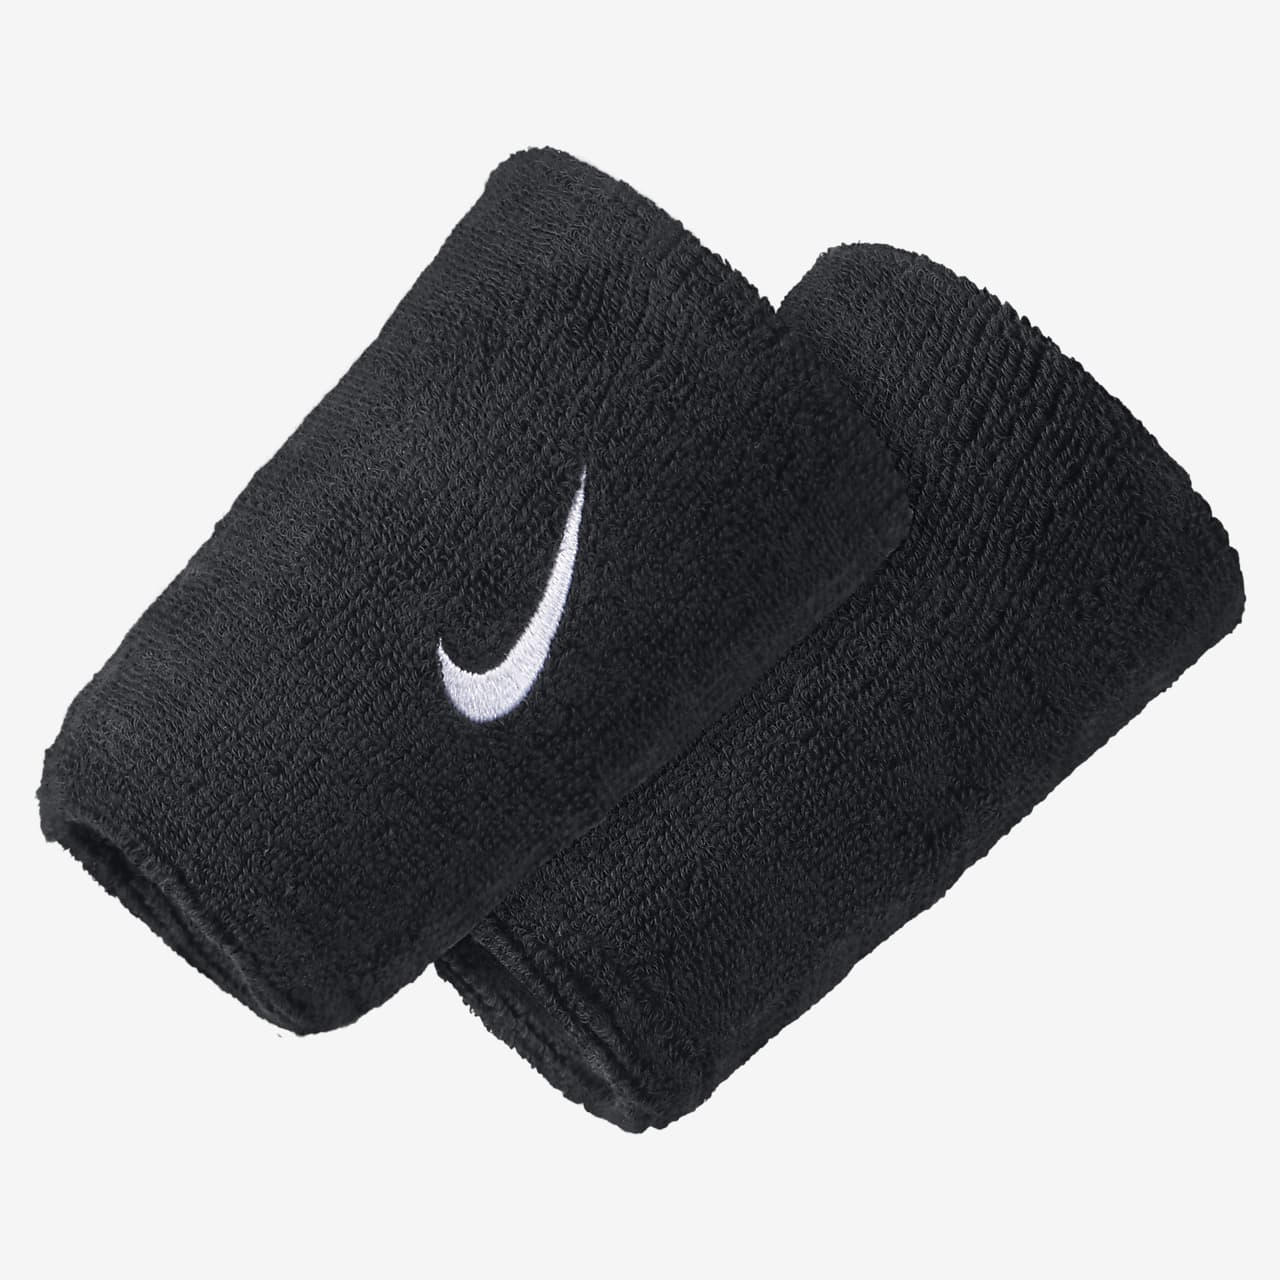 Nike Swoosh Extra Wide Wristbands